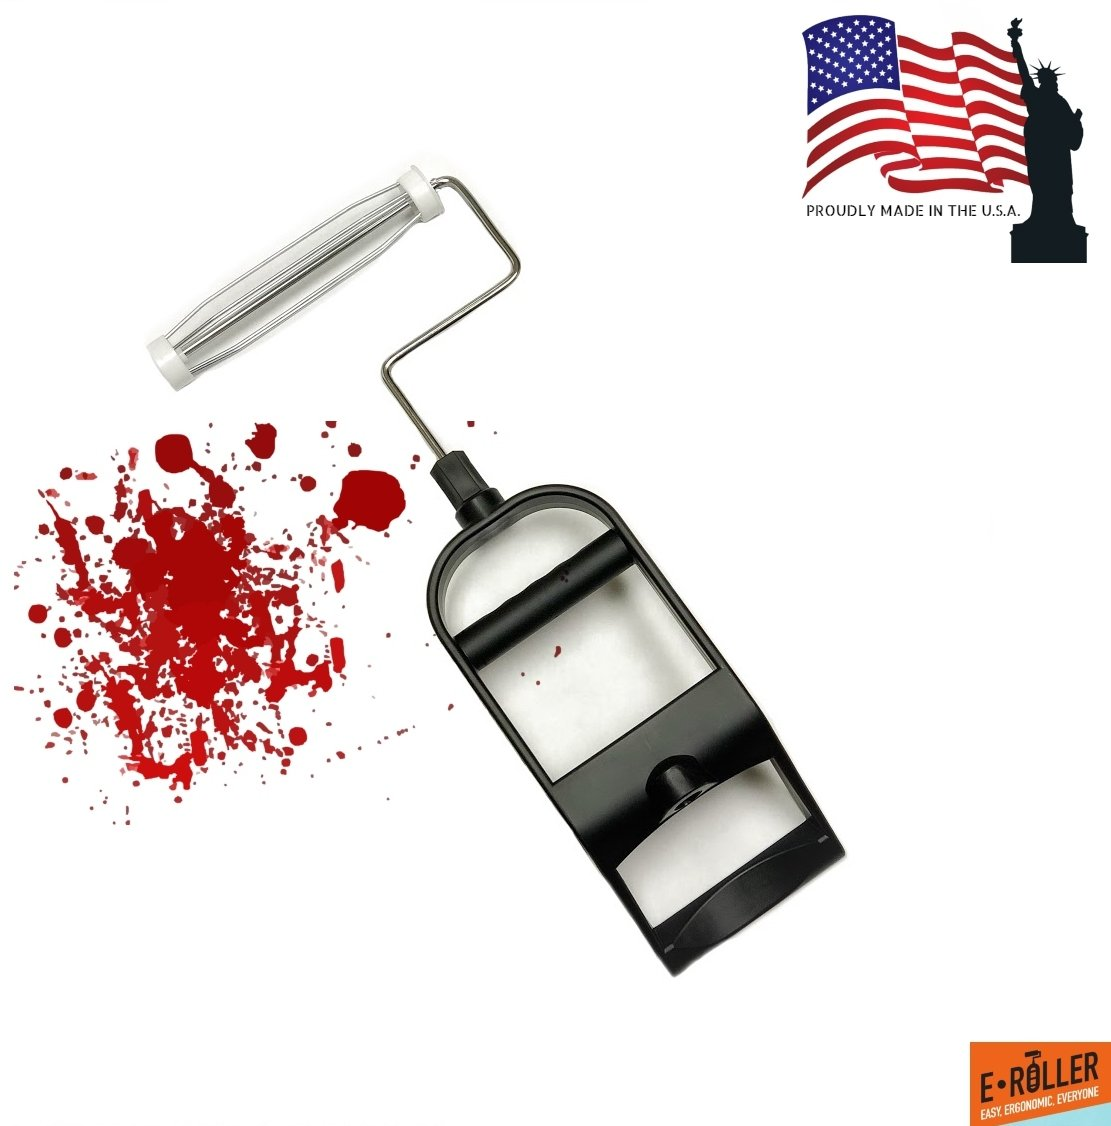 All New! Ergonomic Paint Brush Roller Applicator and Handle Set/Kit - with 9'' Roller Comfort Handle - by E∙ROLLER